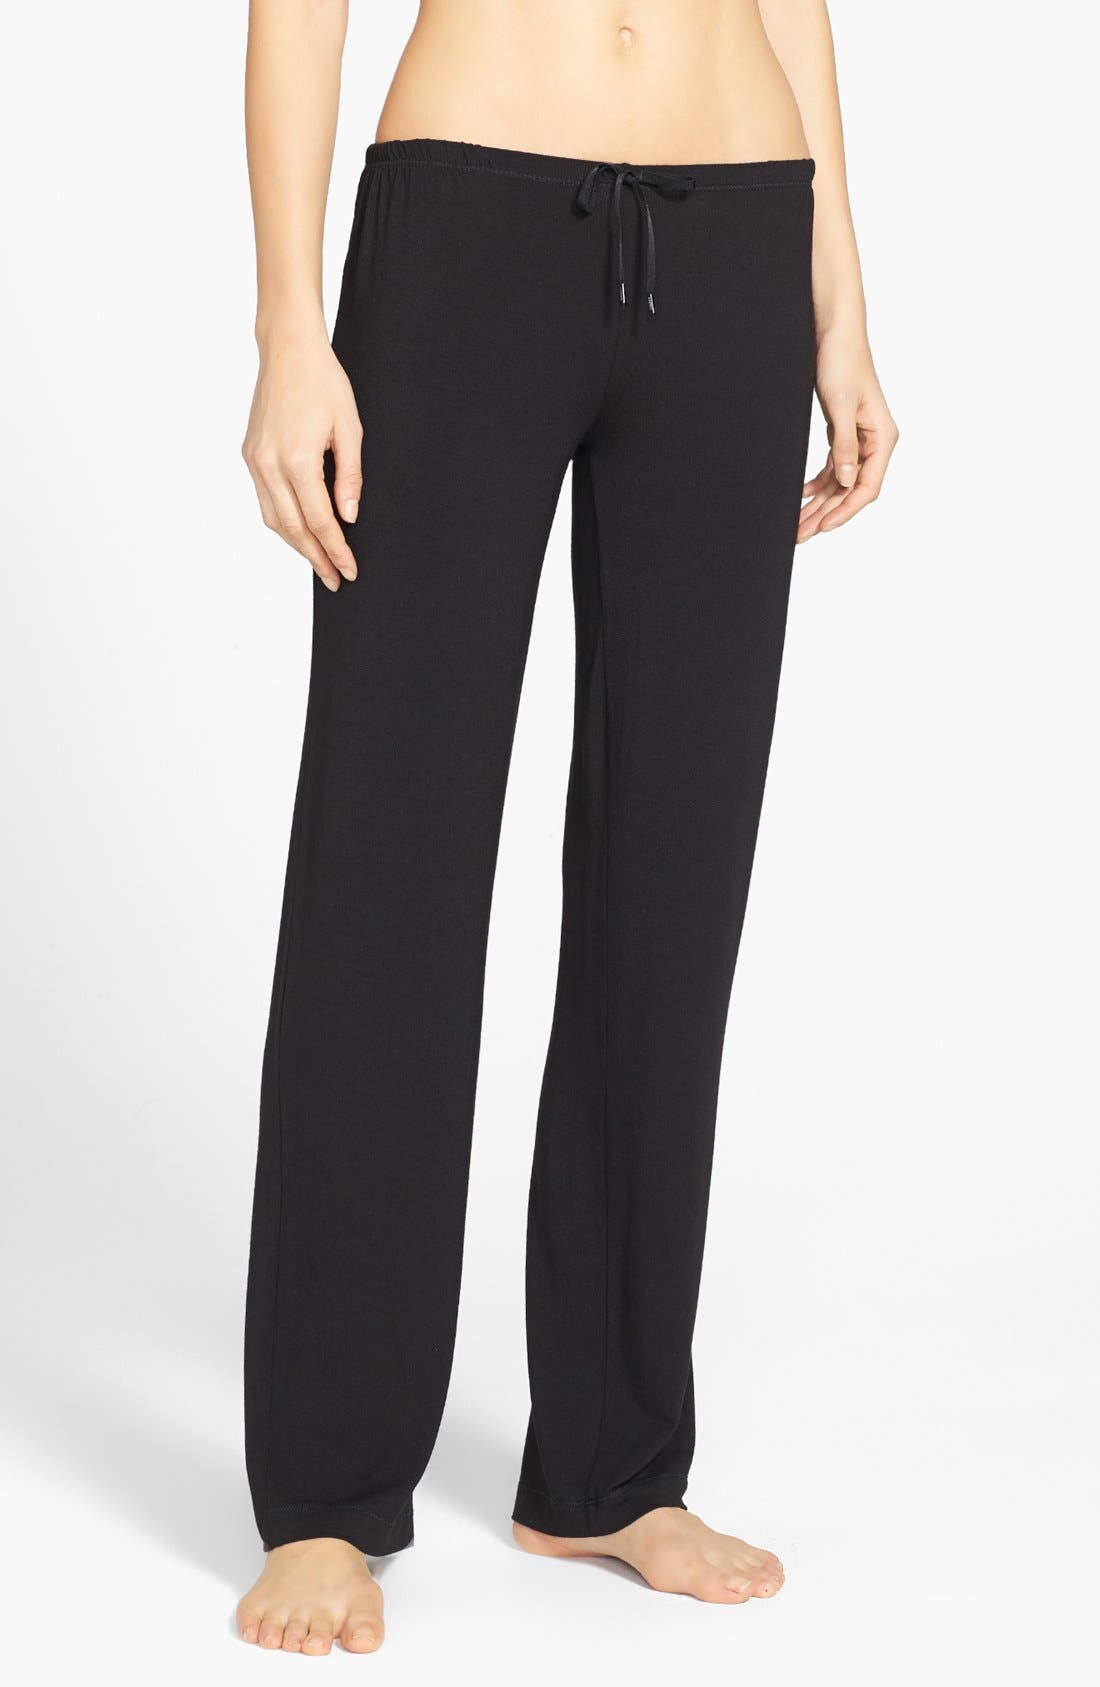 DKNY 'City Essentials' Pants